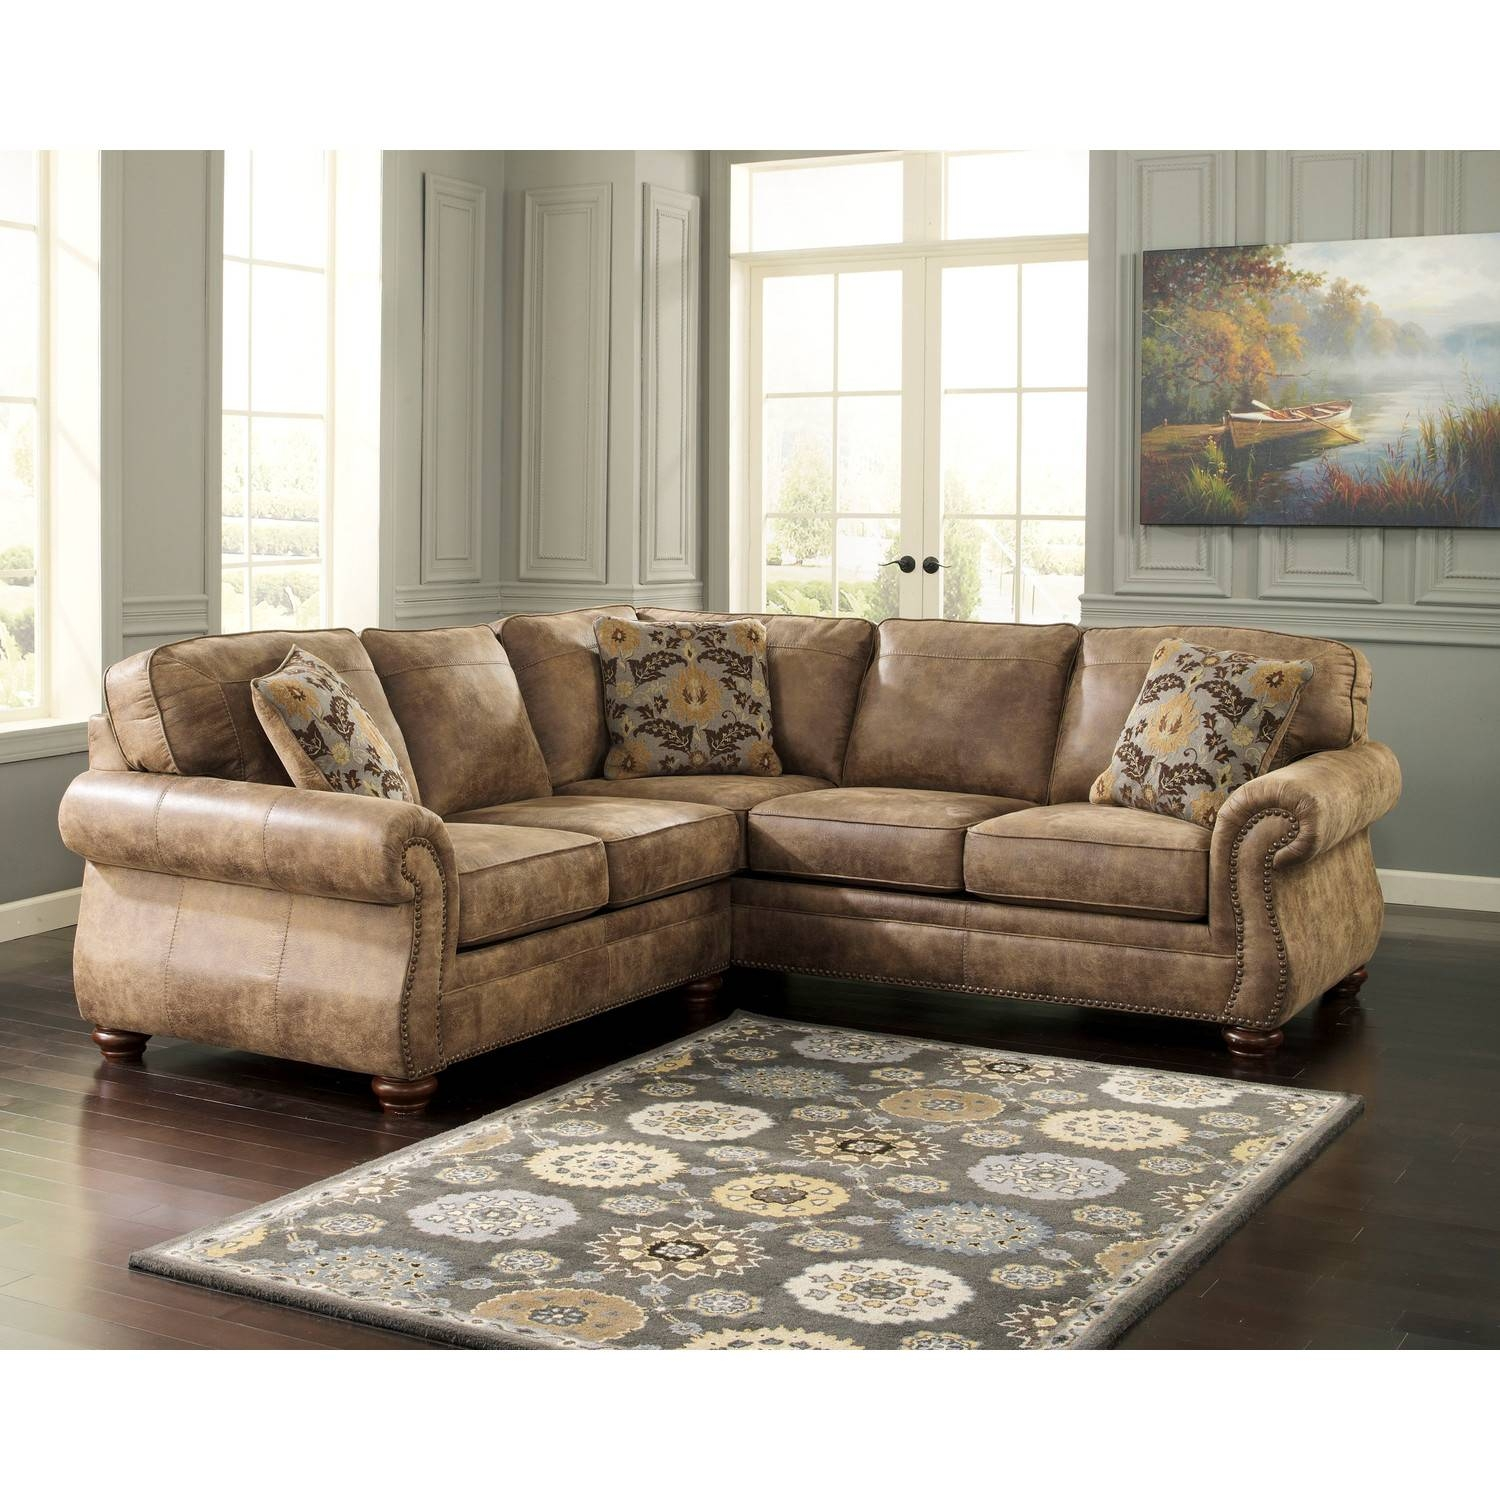 Closeout Sofas Clearance The Dump Furniture Tannery Closeout Top